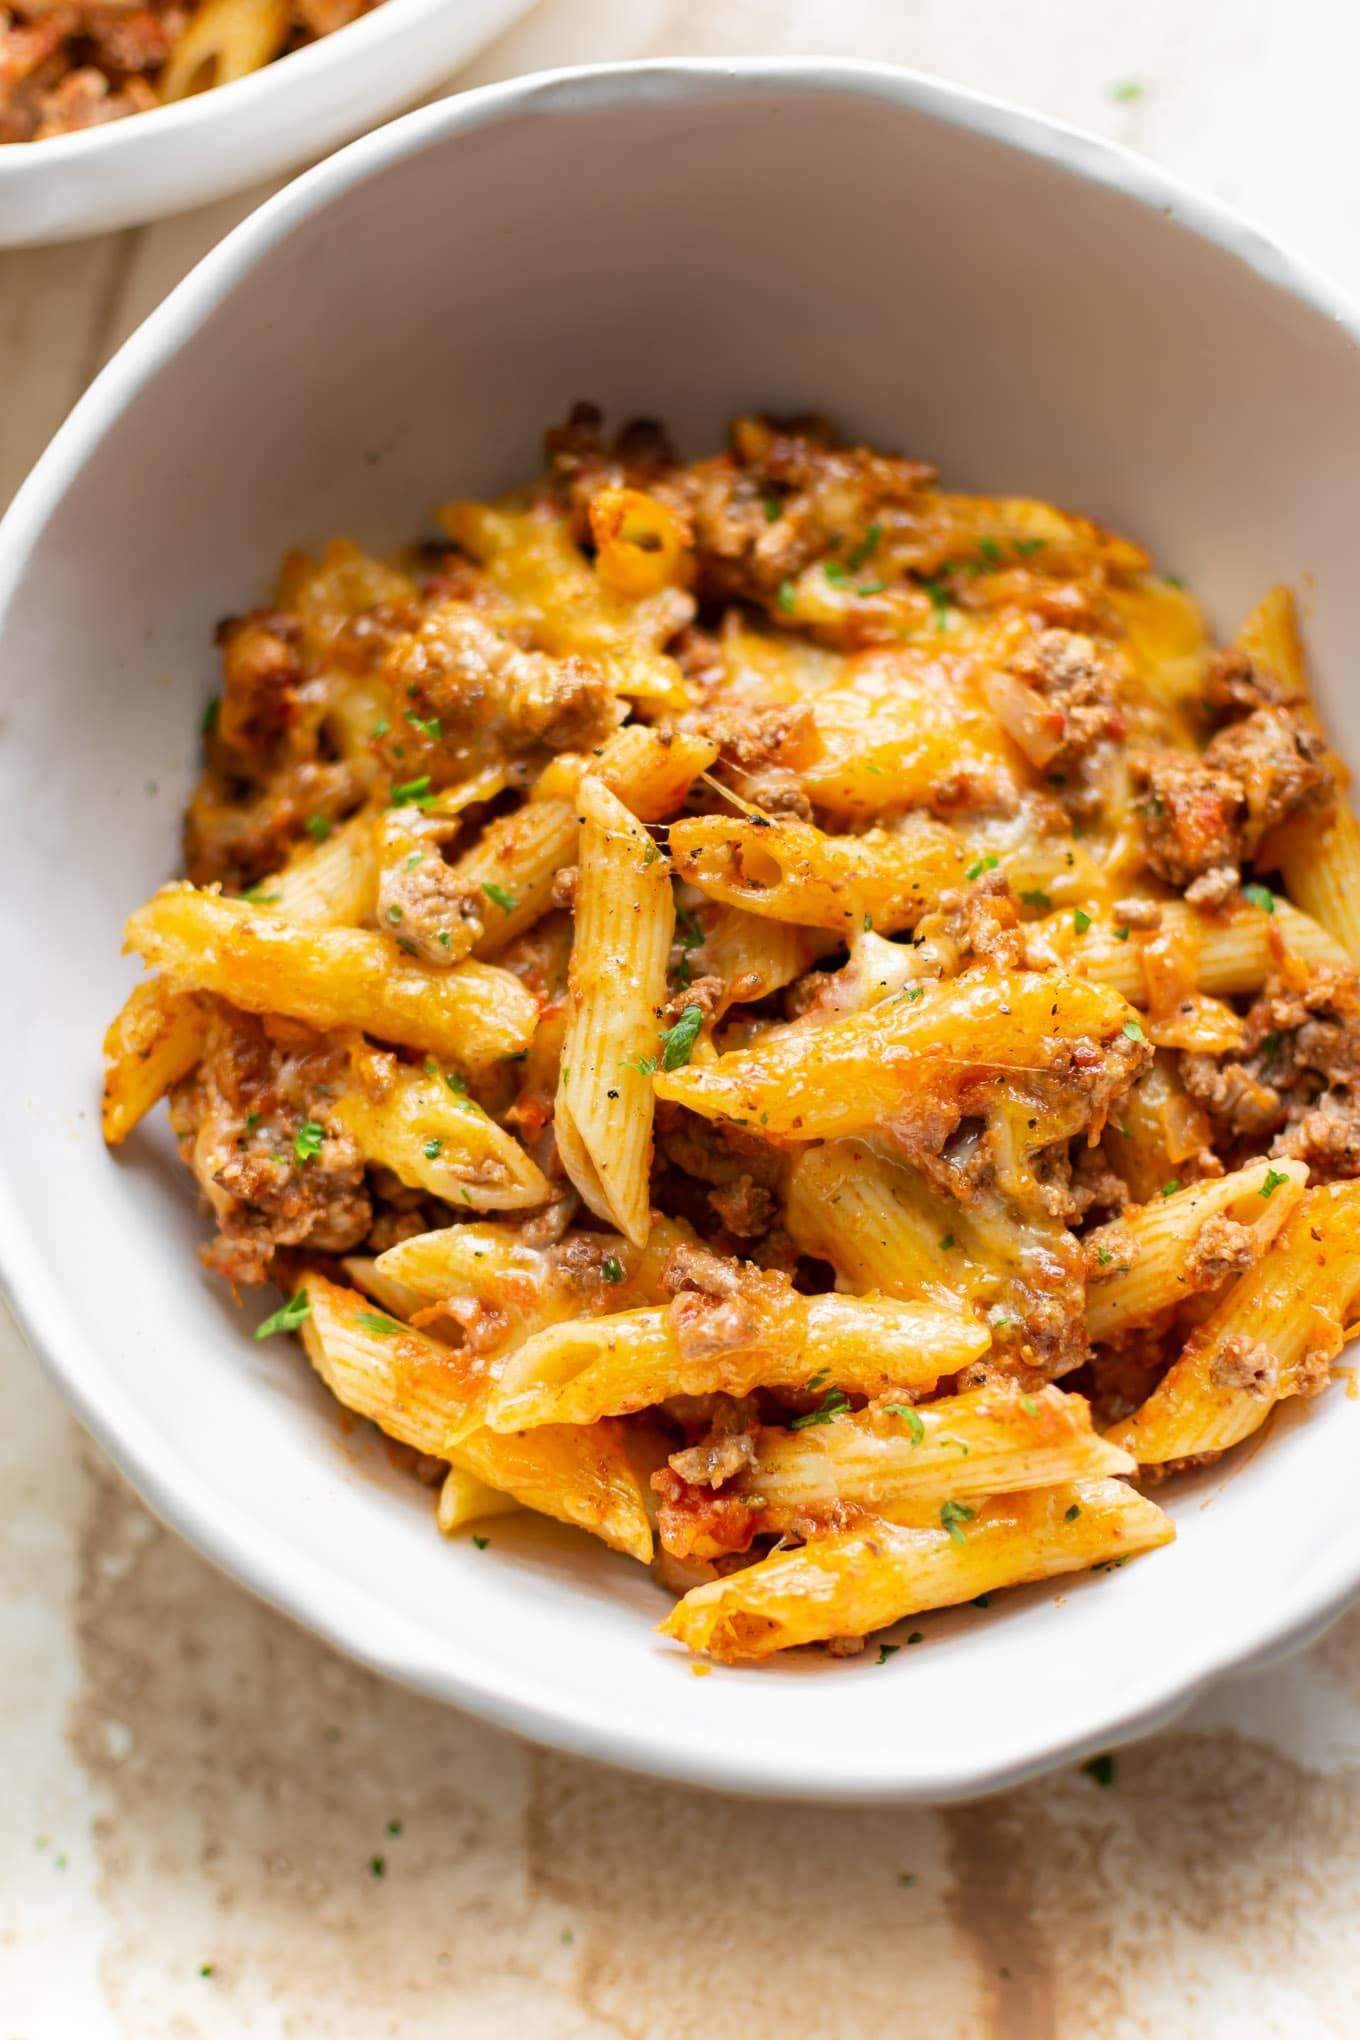 This Ground Beef Pasta Casserole Recipe Is Great For Hungry Tummies It S A Quick And Easy Dinner Us In 2020 Beef Pasta Recipes Ground Beef Casserole Ground Beef Pasta